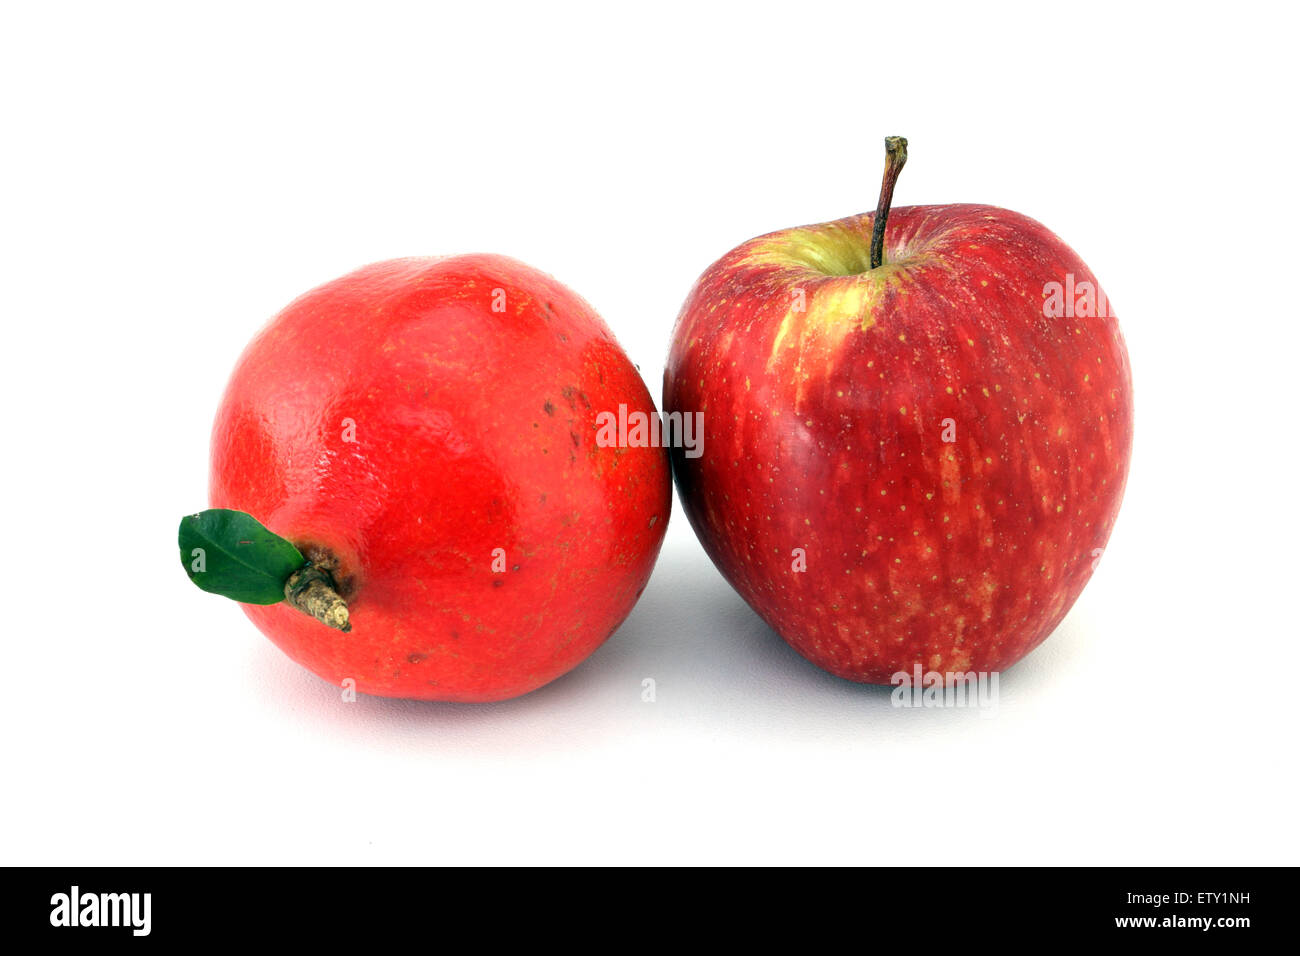 Apple and pomegranate on white background - Stock Image